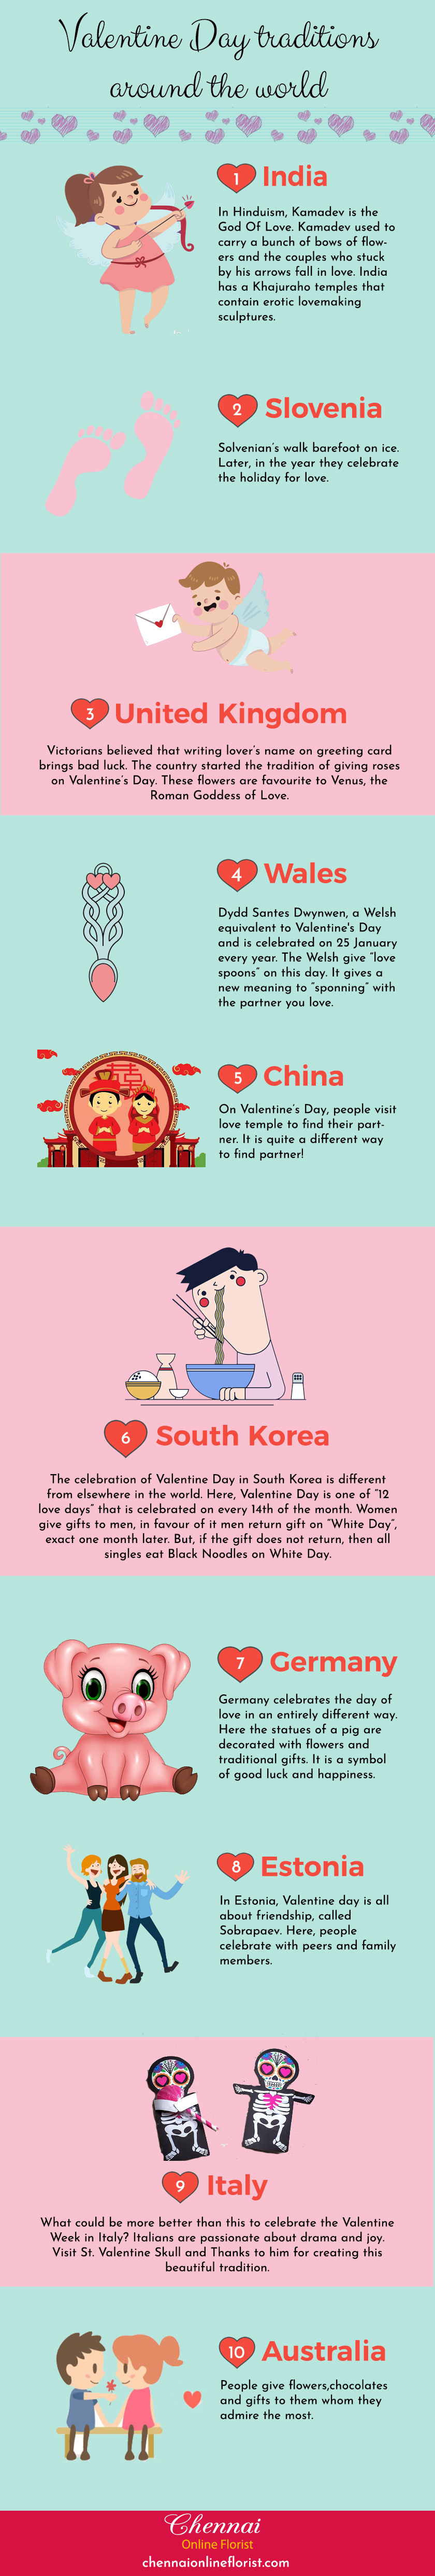 Valentine's Day Around the World: Celebrations and Superstitions - Infographic